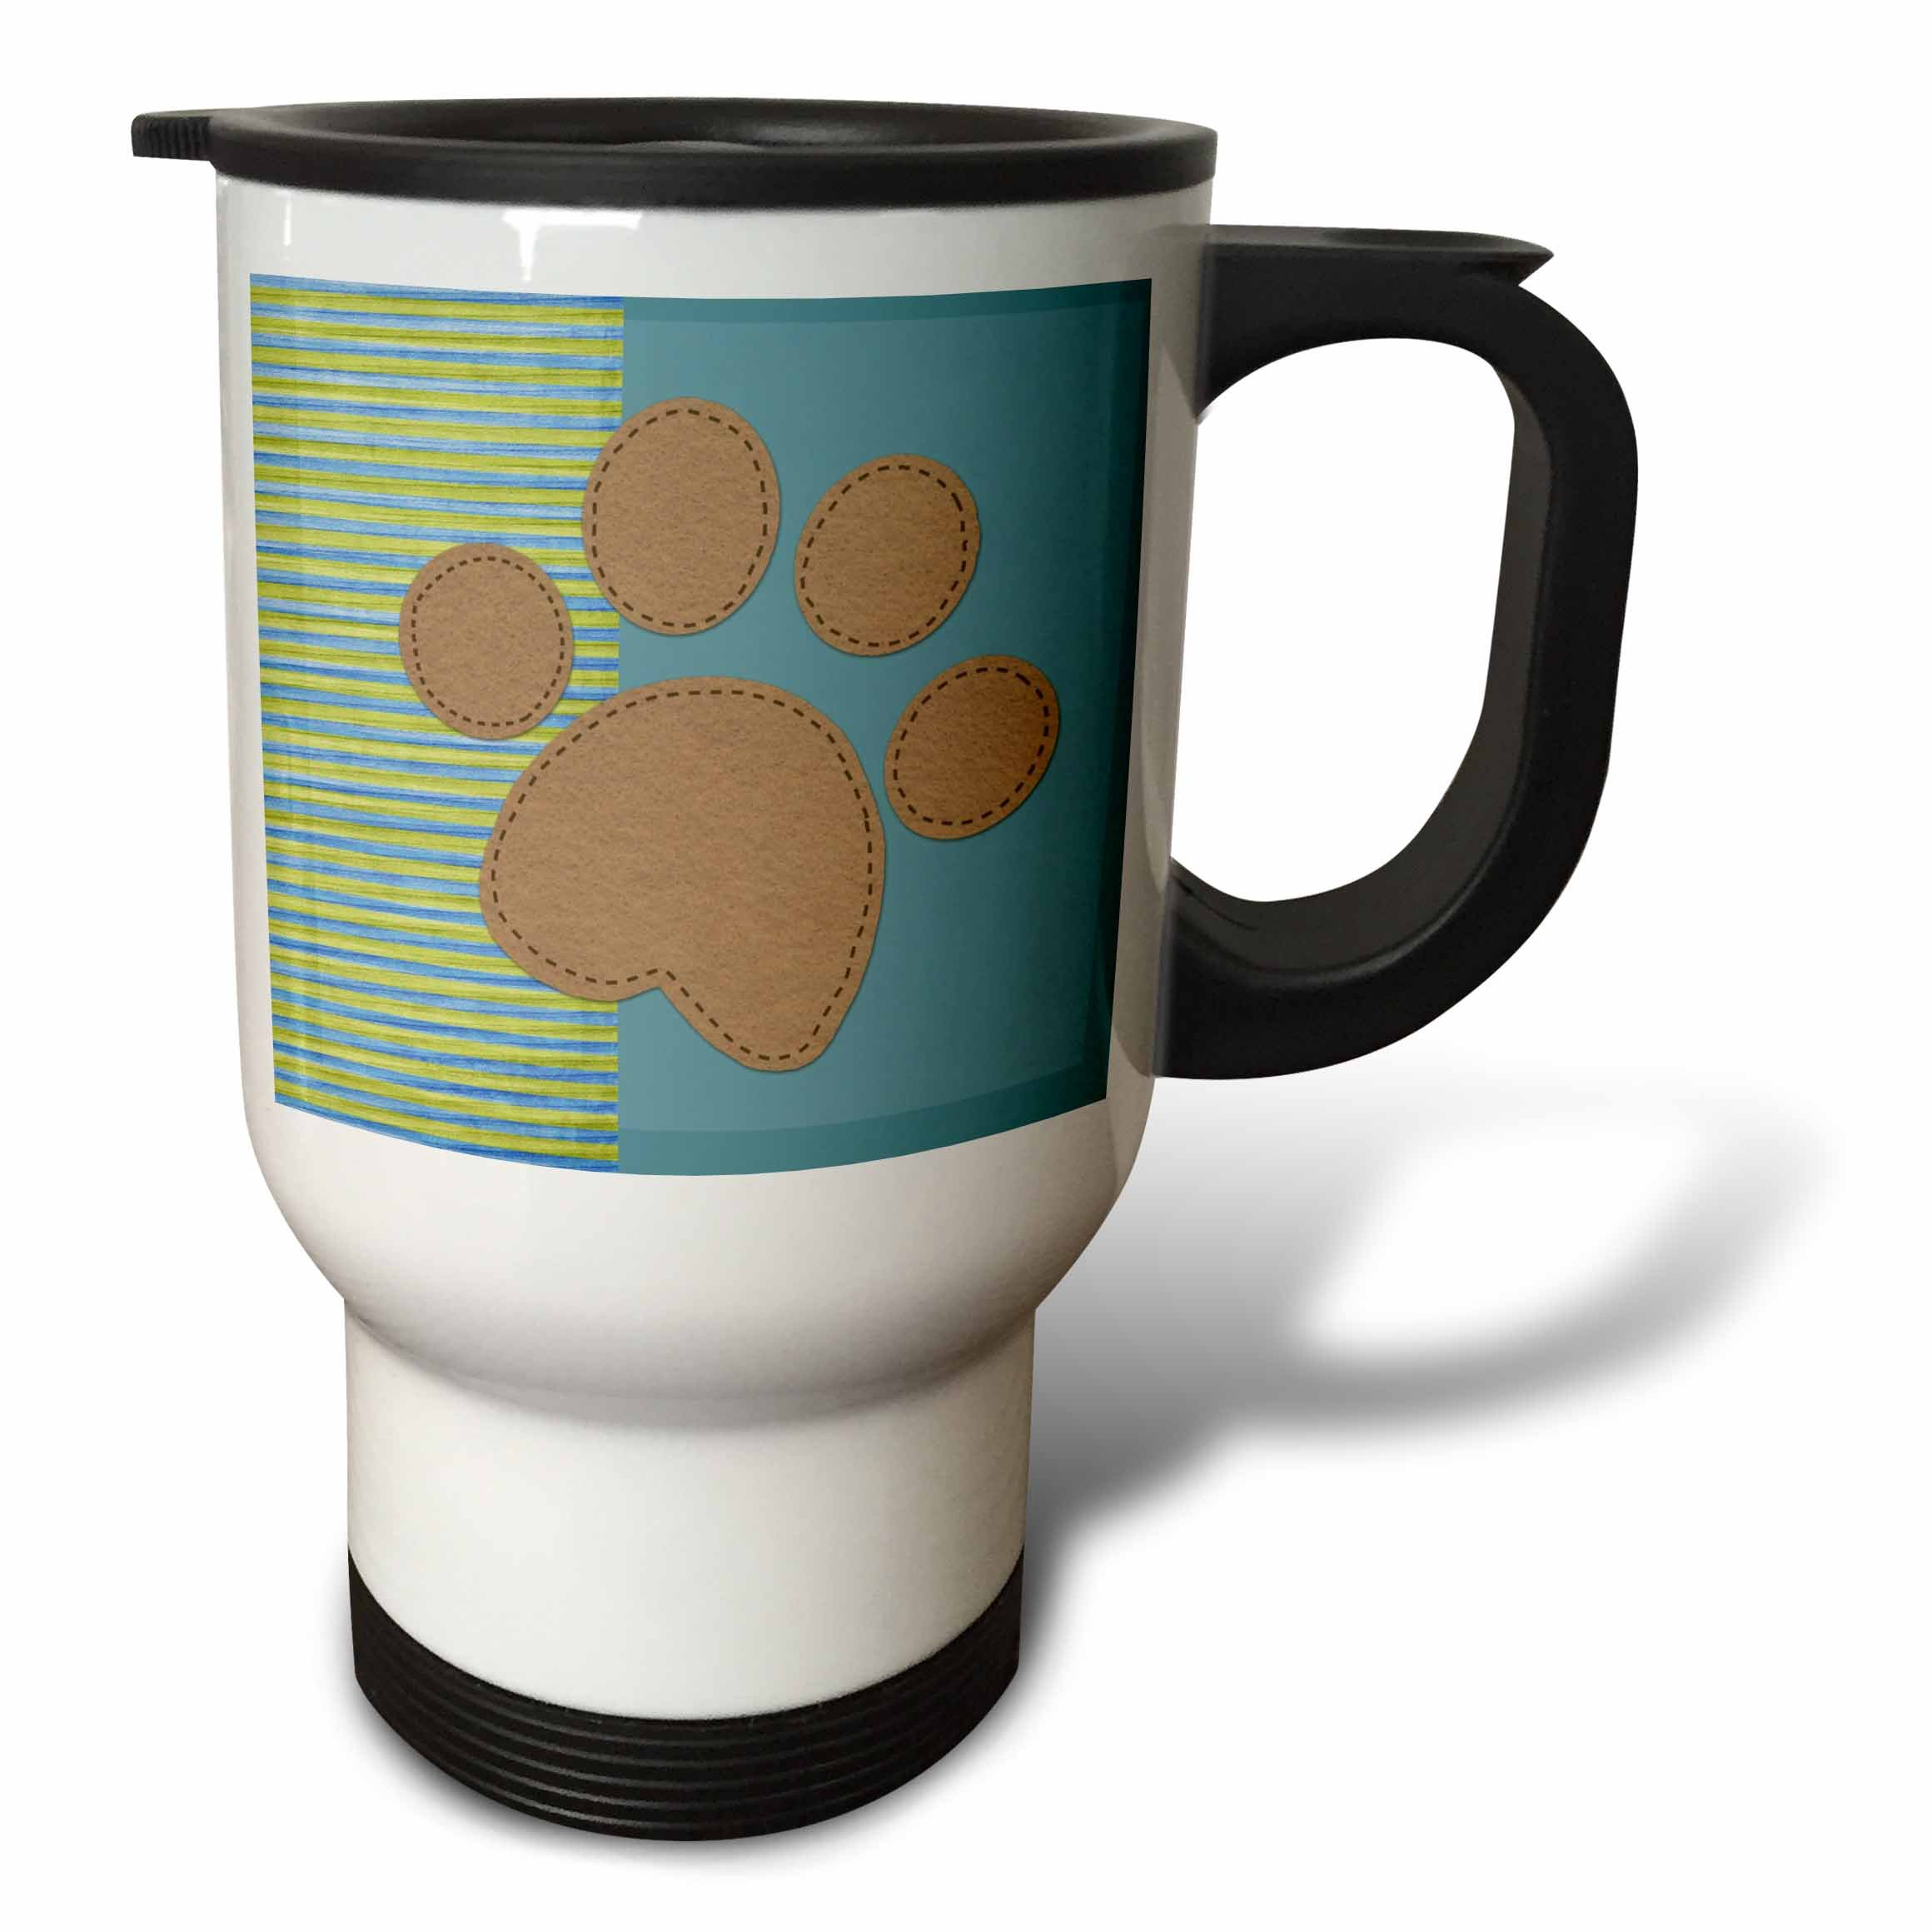 3dRose Stripes and Solids Paw Print-Fun Animal Art Stainless Steel Travel Mug, 14-Ounce